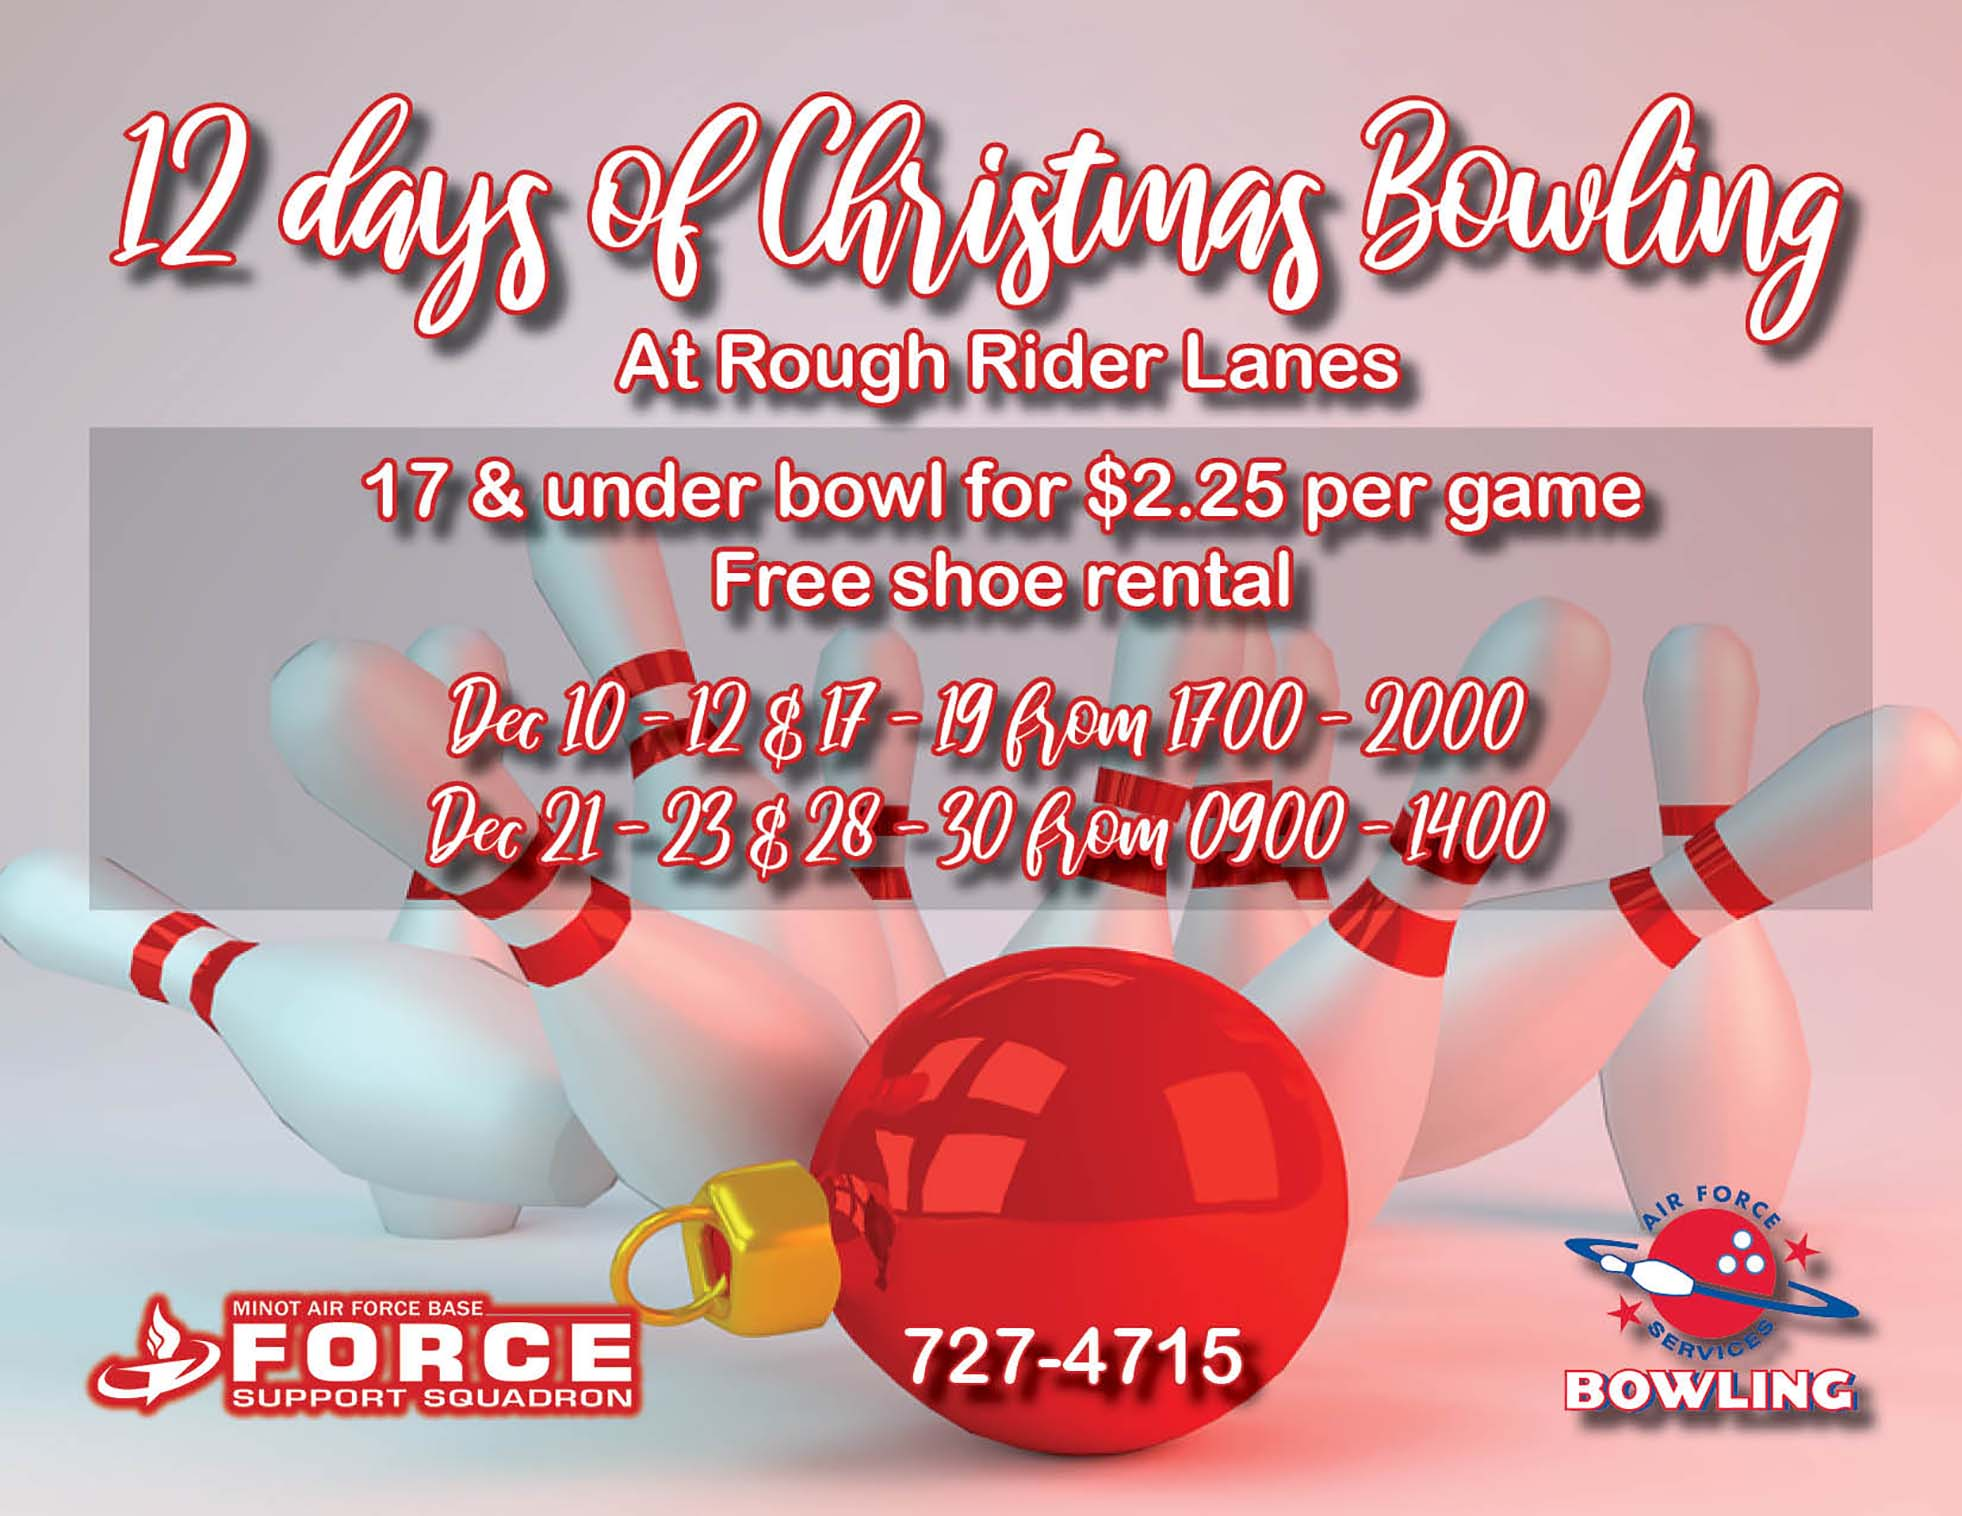 12 Days of Christmas Bowling Special